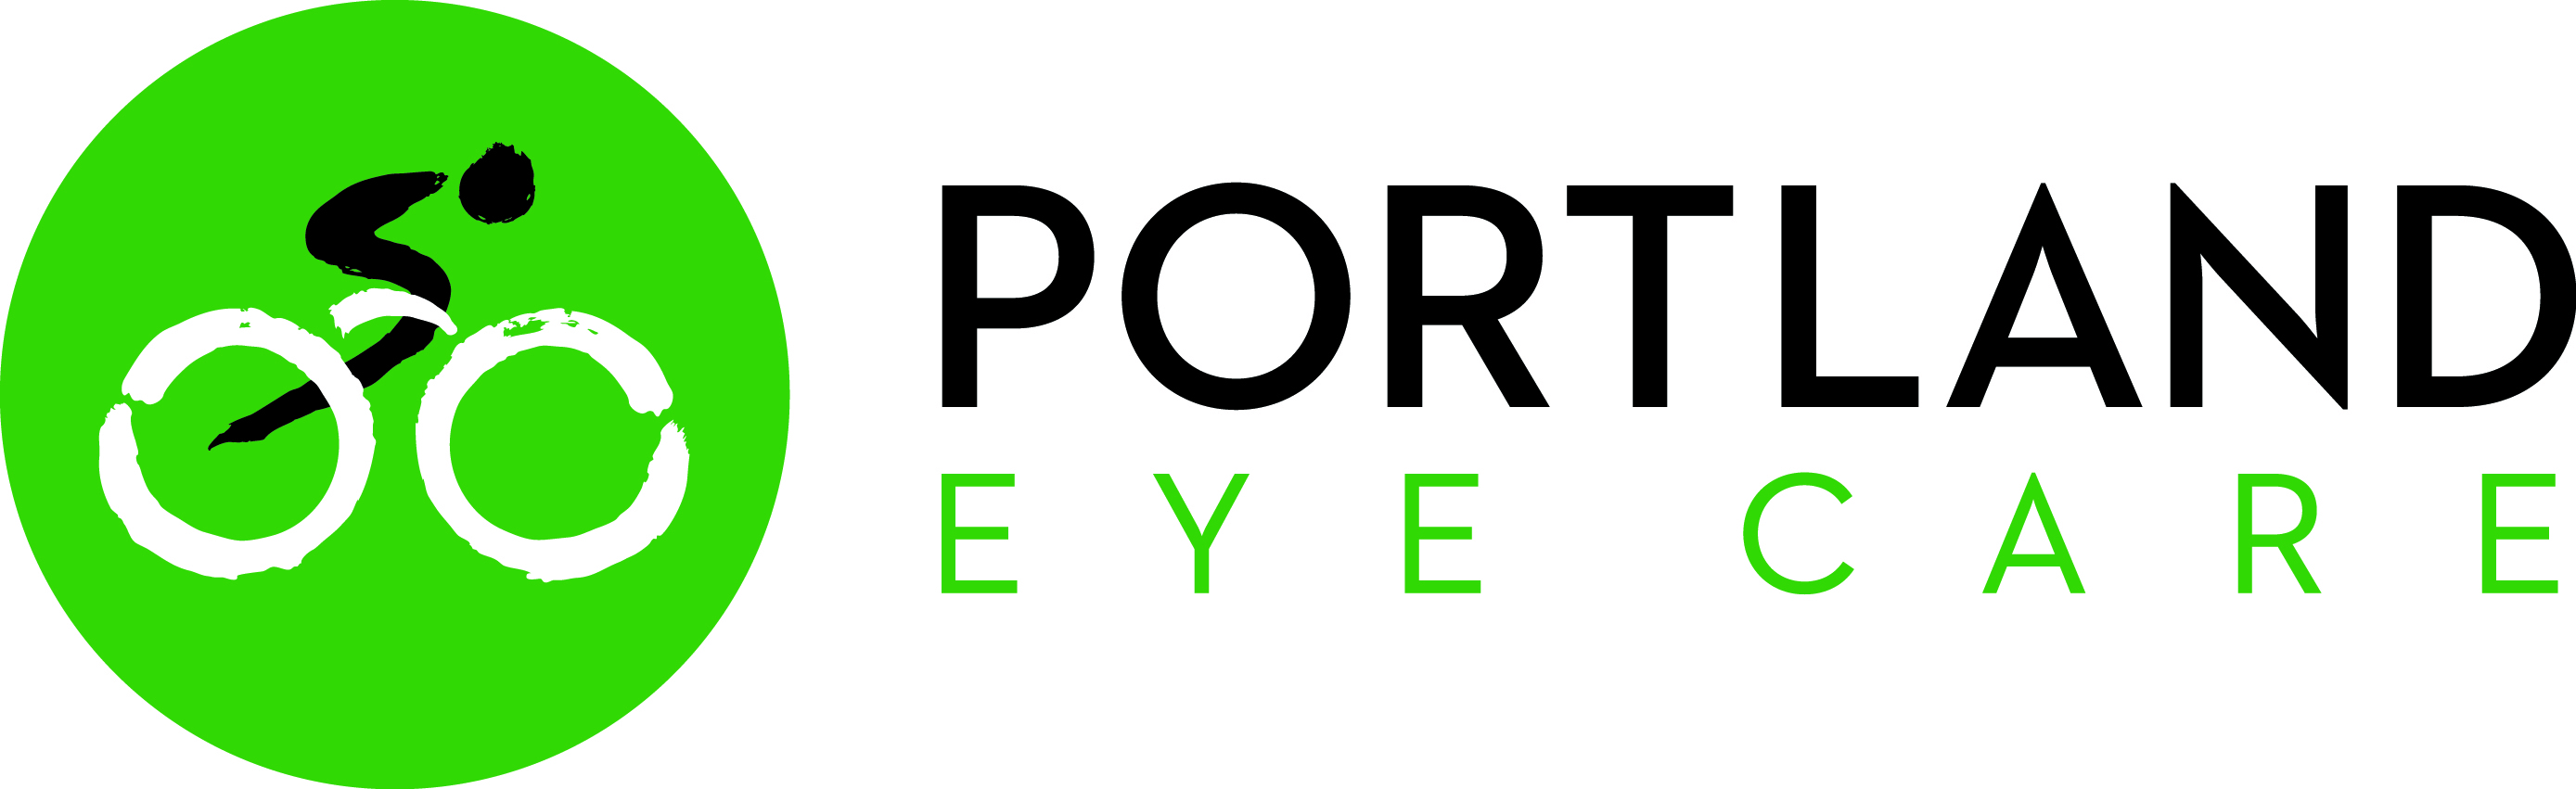 Portland Eye Care Logo